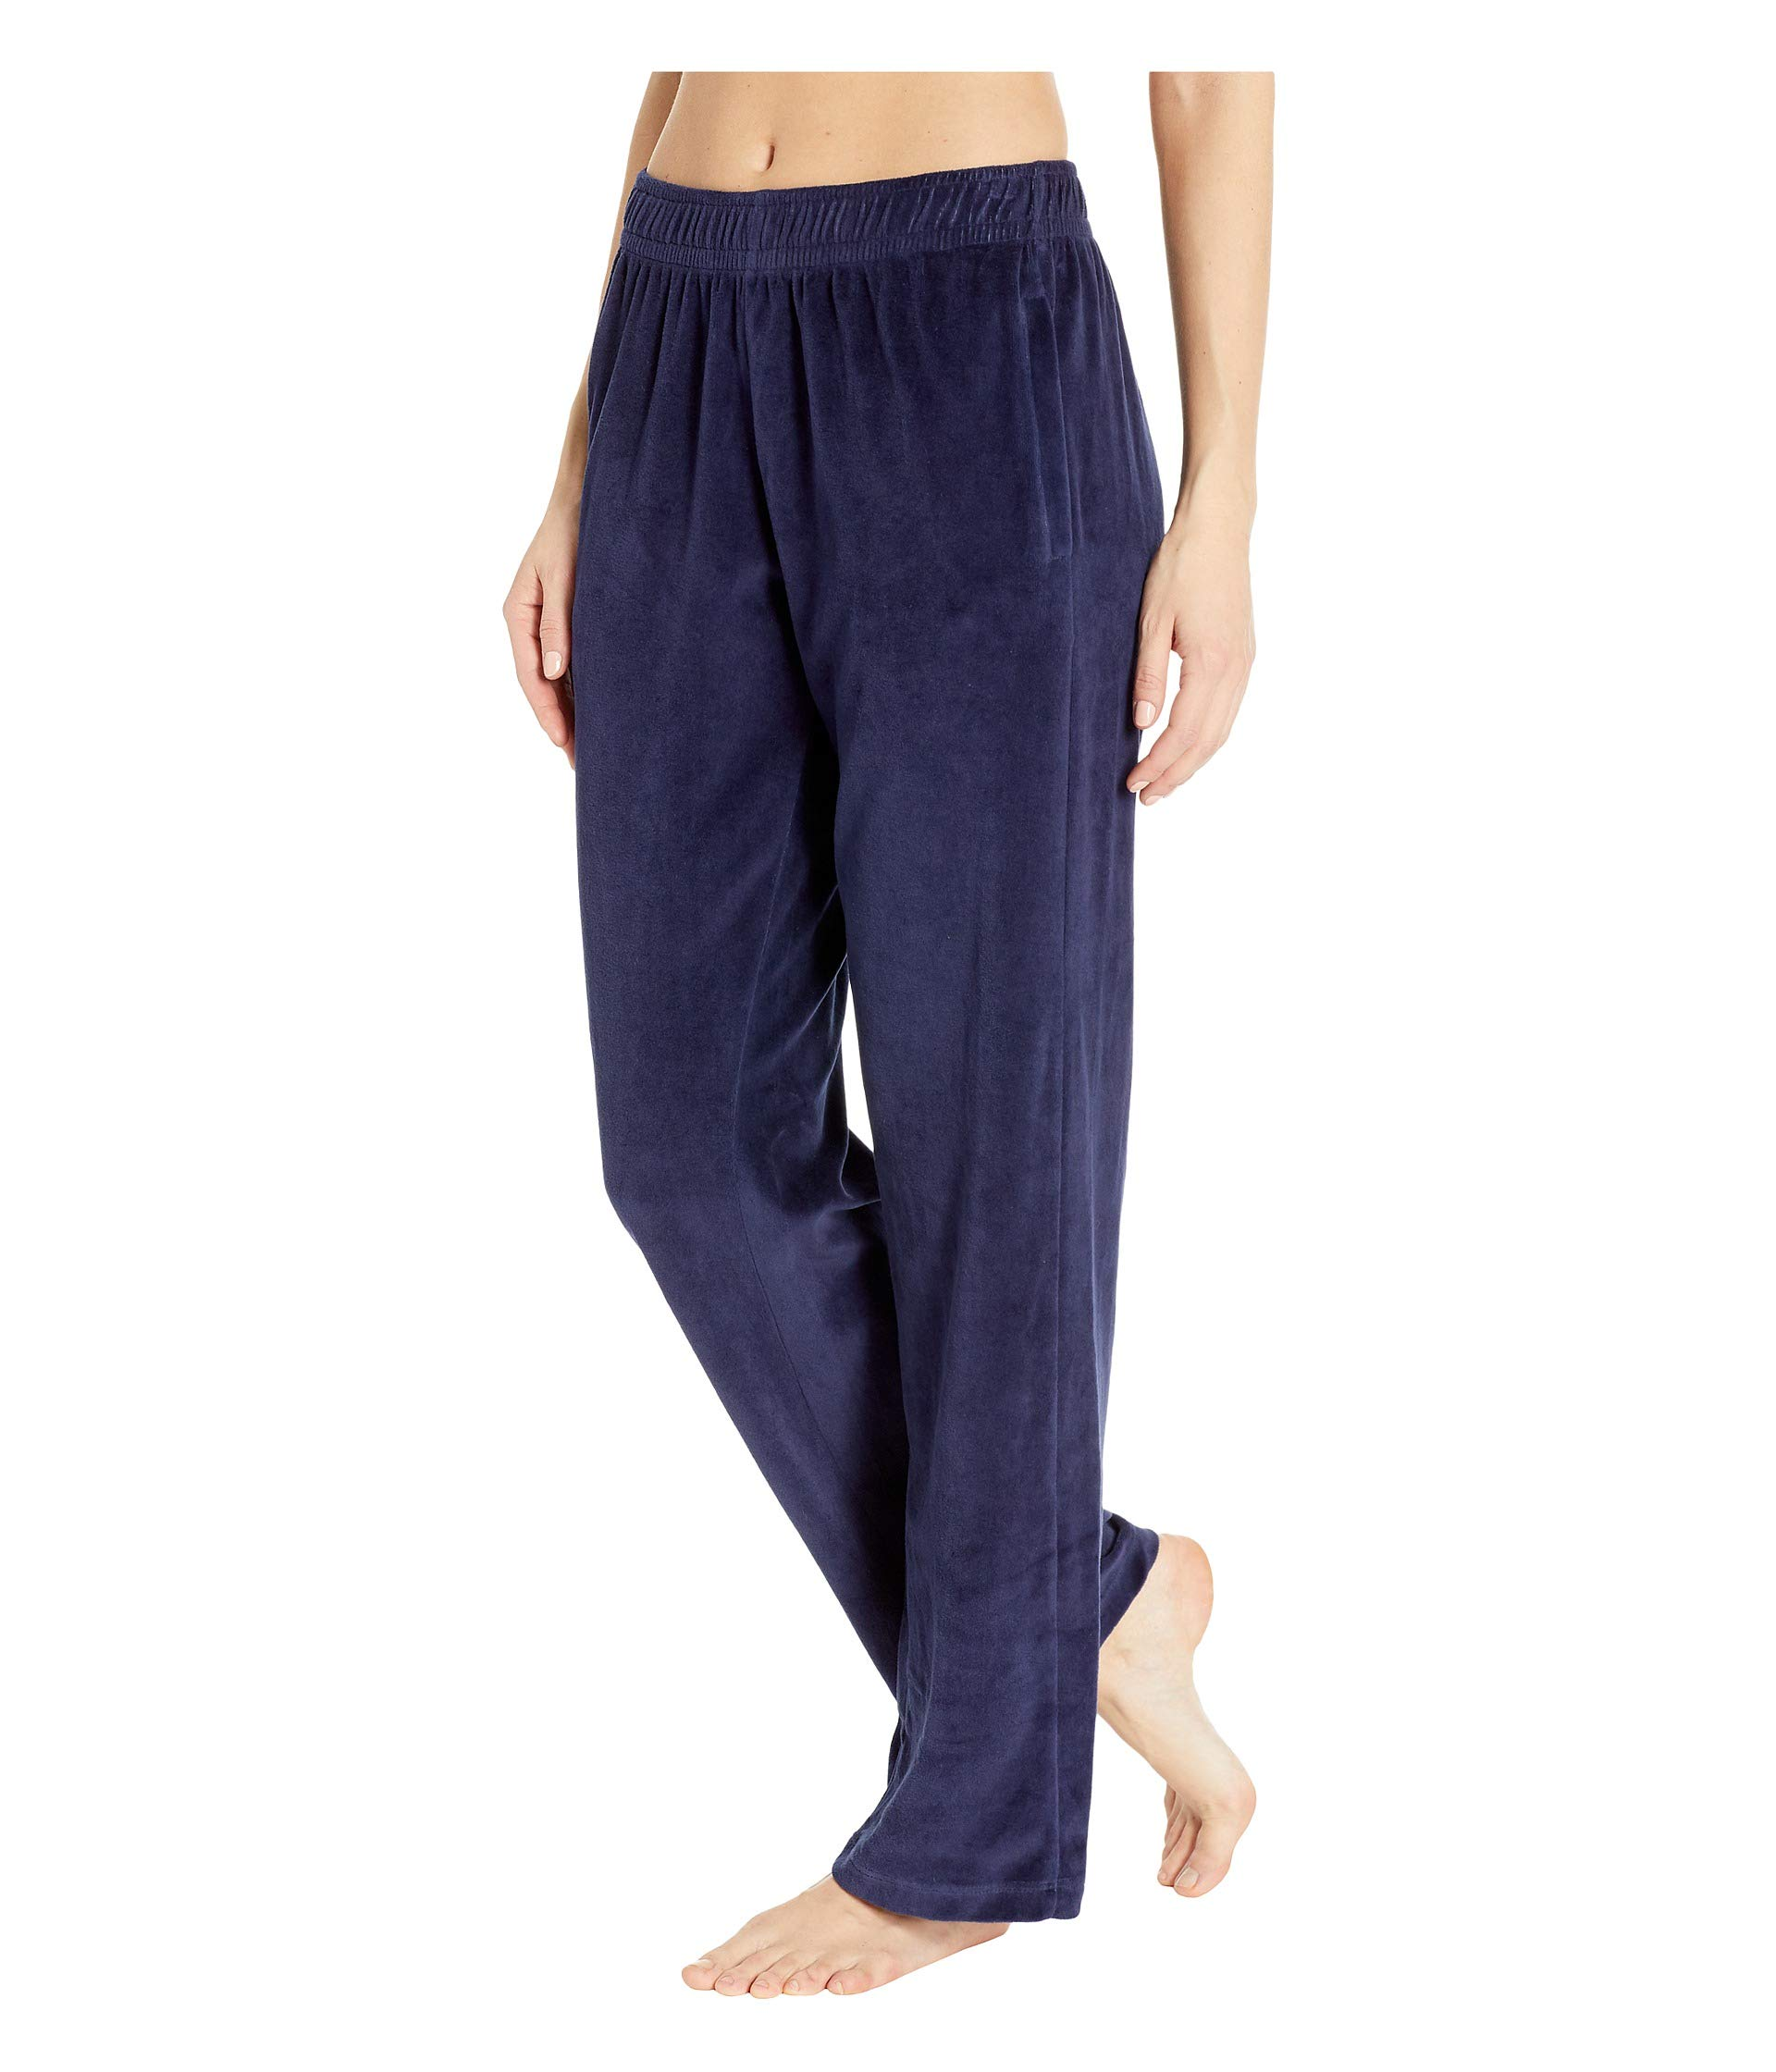 Splendid Midnight Navy Pants Pj Velour 6qrwxSZ6fX